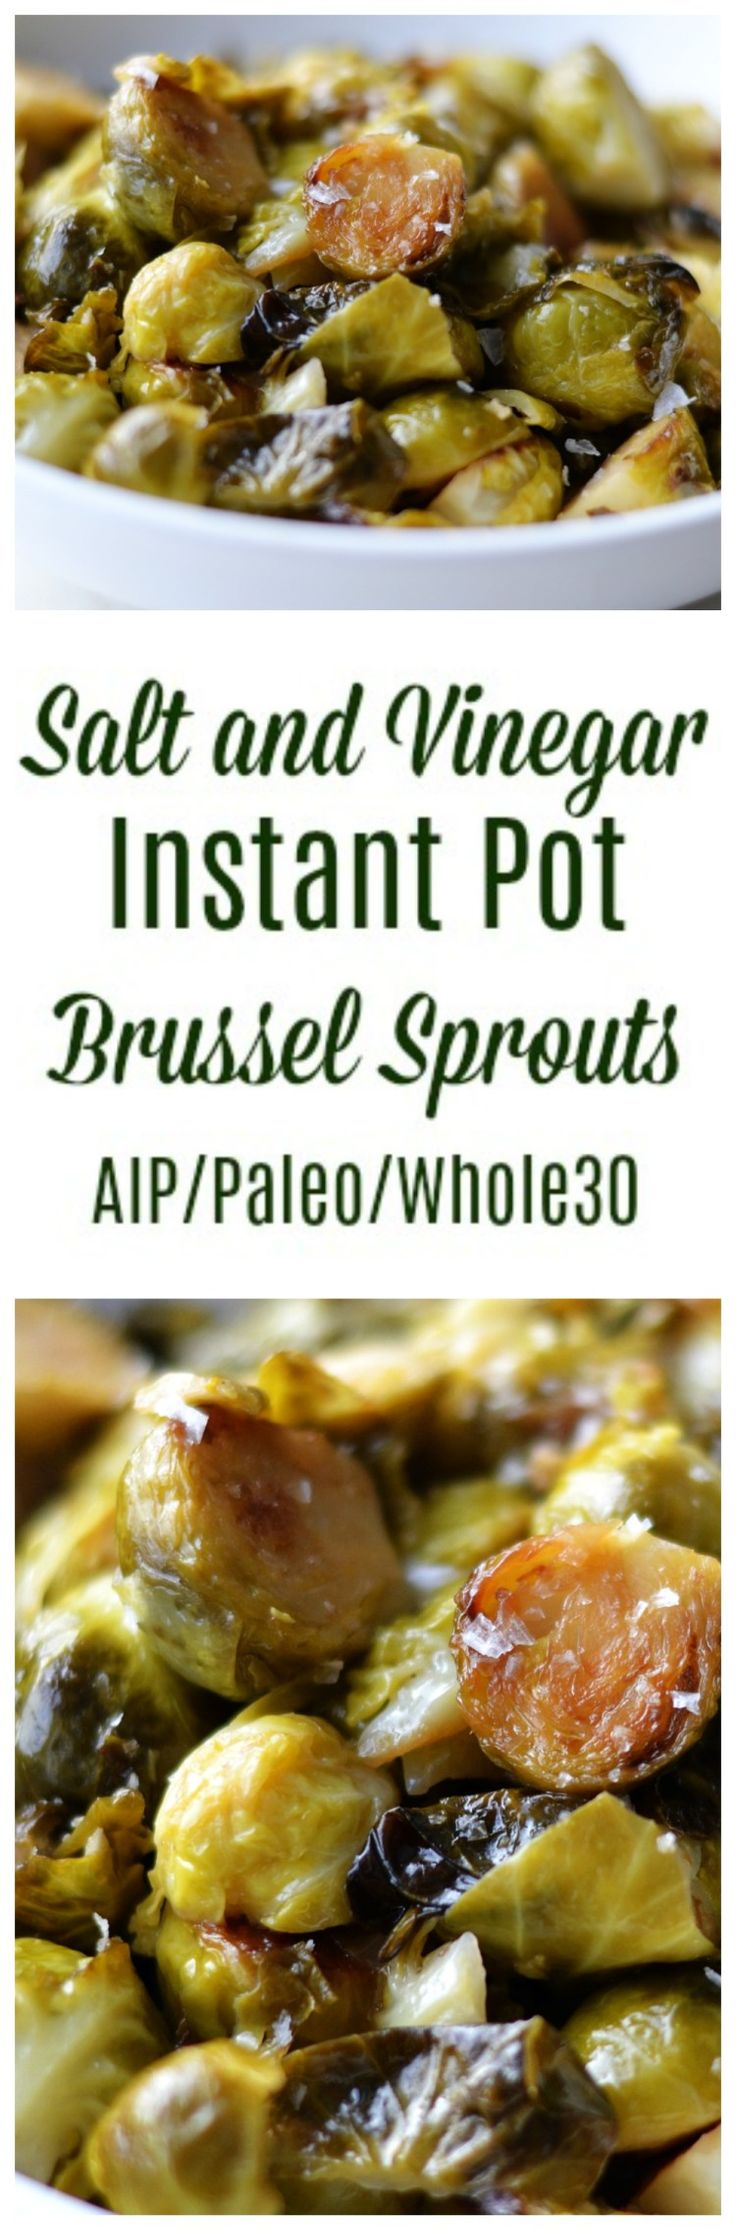 Salt and Vinegar Instant Pot Brussel Sprouts (AIP/Paleo/Whole30) * Lichen Paleo, Loving AIP